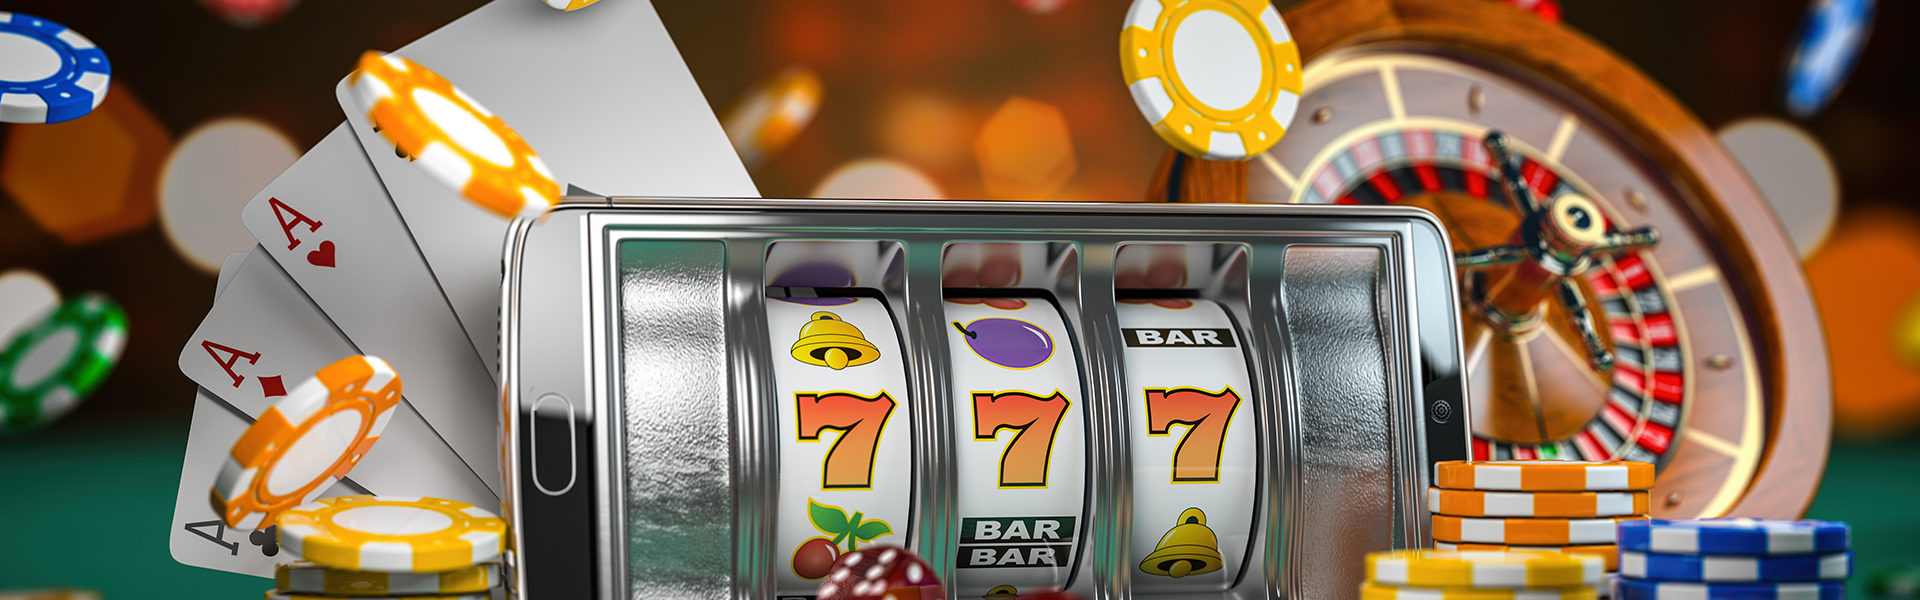 Casino chips, cards, dice, and slot machine representation